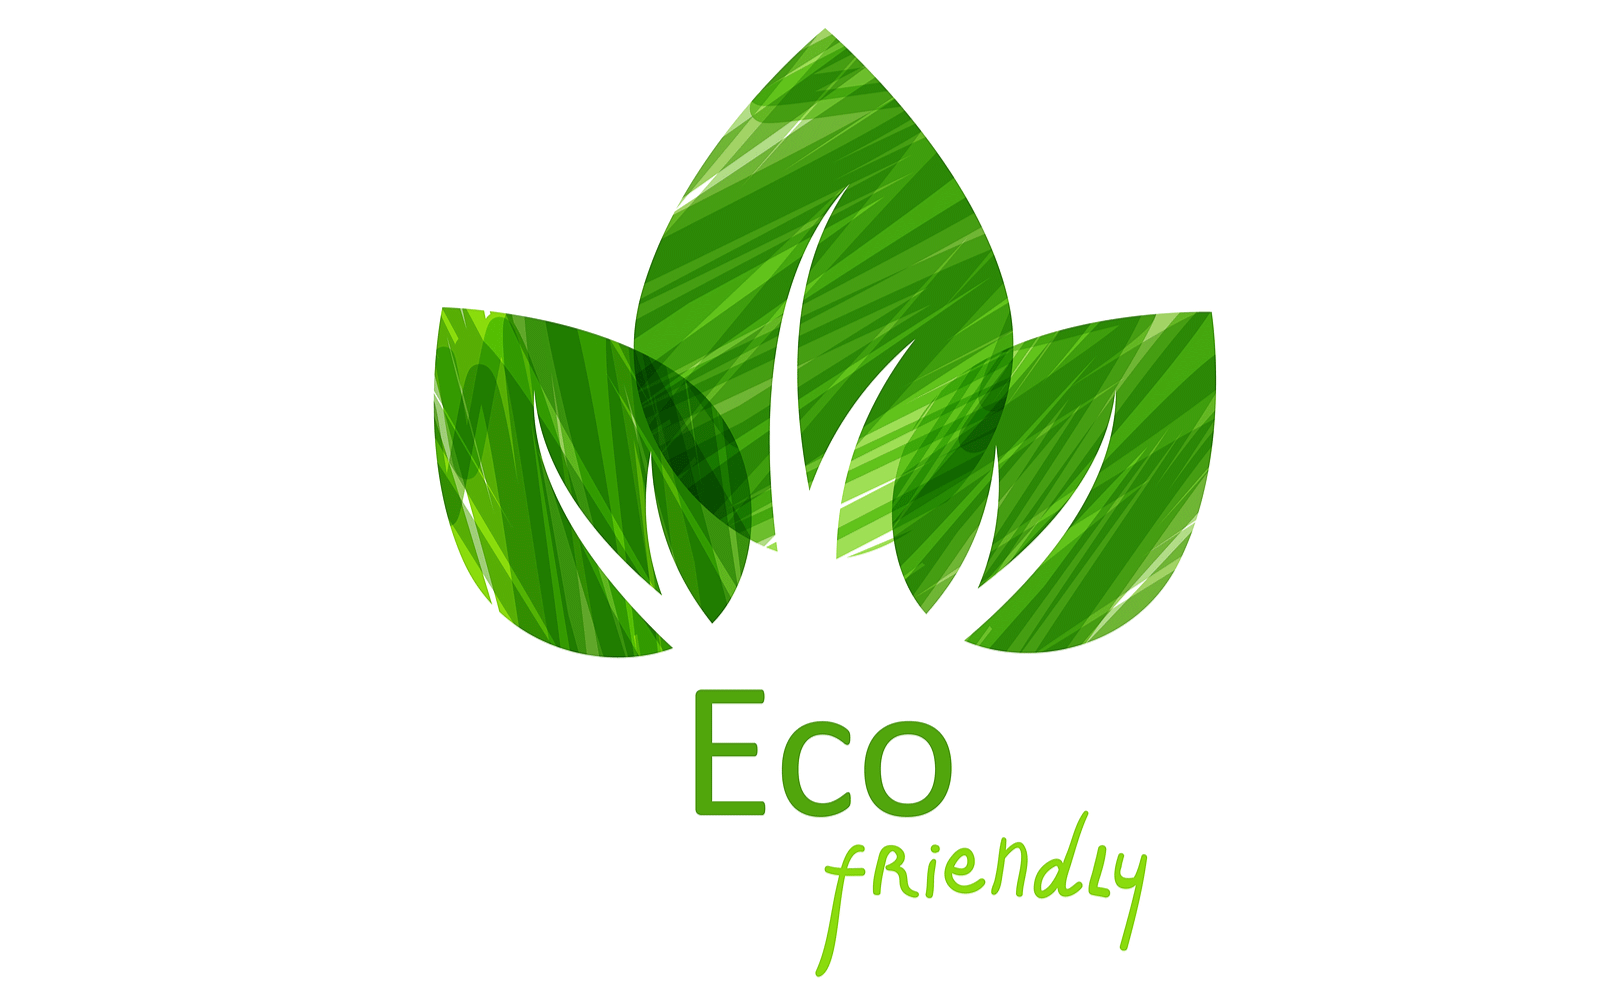 Eco friendly landscaping materials tips for landscape for Sustainable interior design products